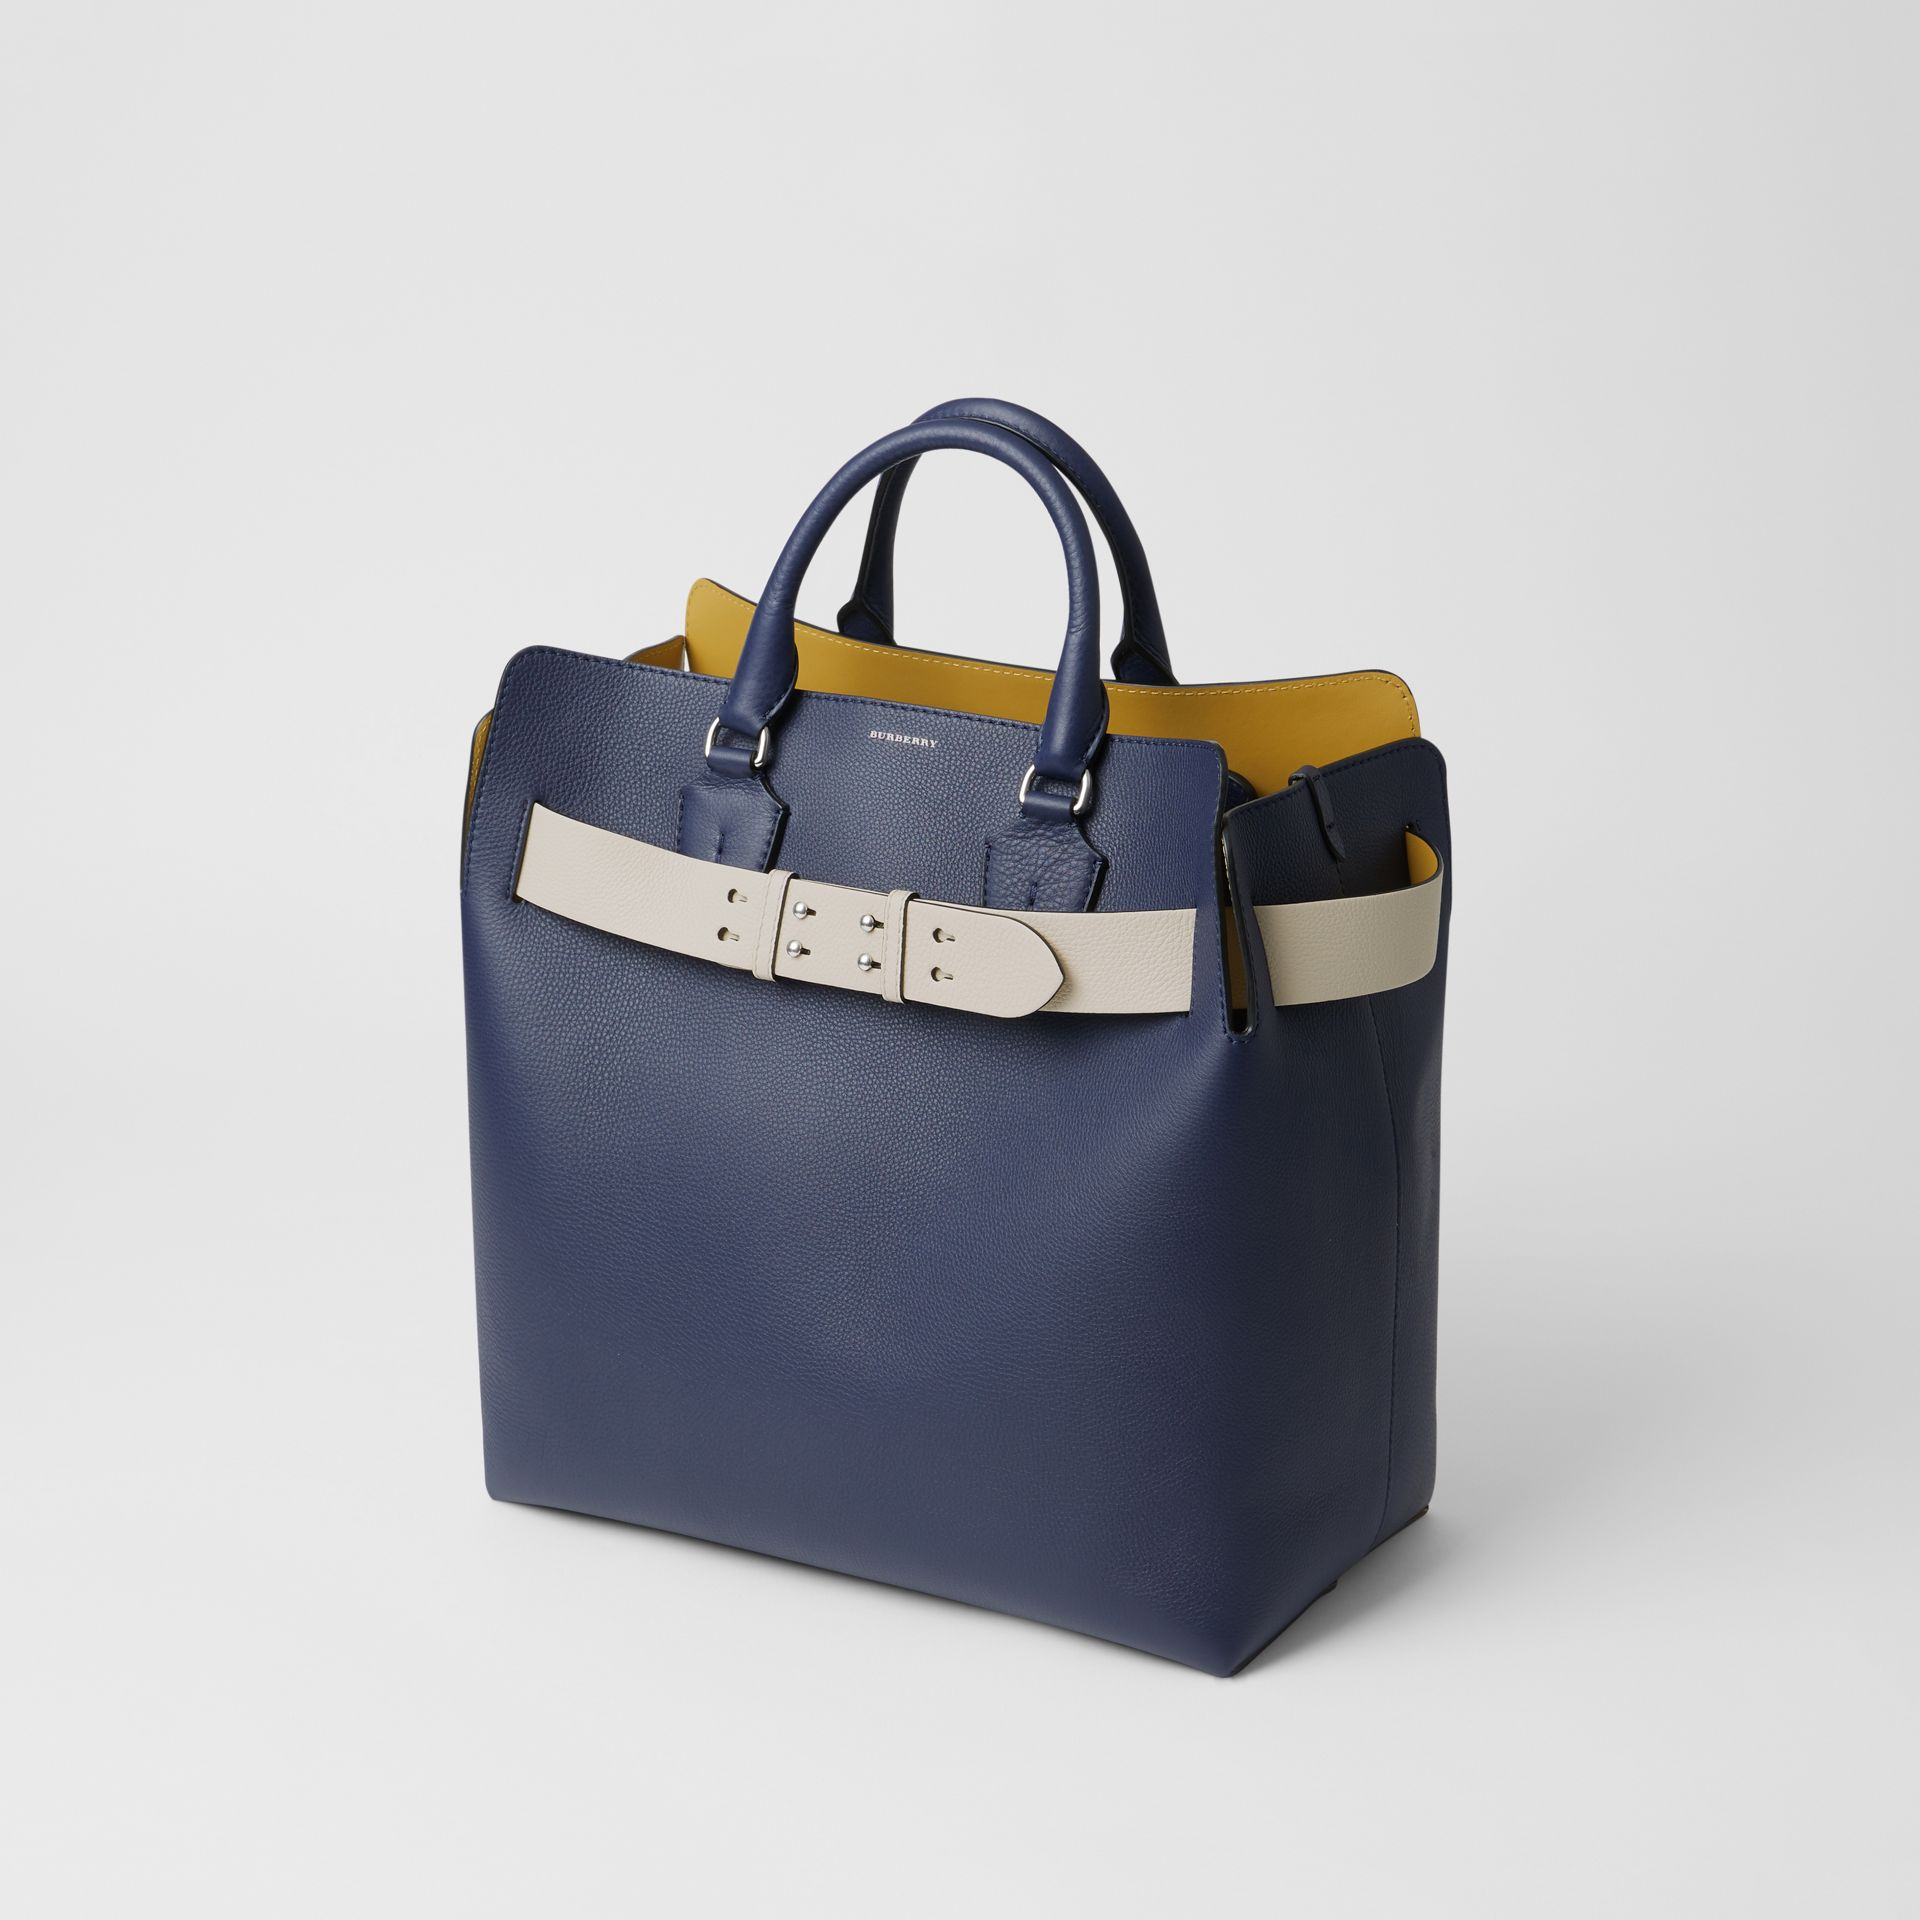 Grand sac The Belt en cuir (Bleu Régence) - Femme | Burberry - photo de la galerie 4